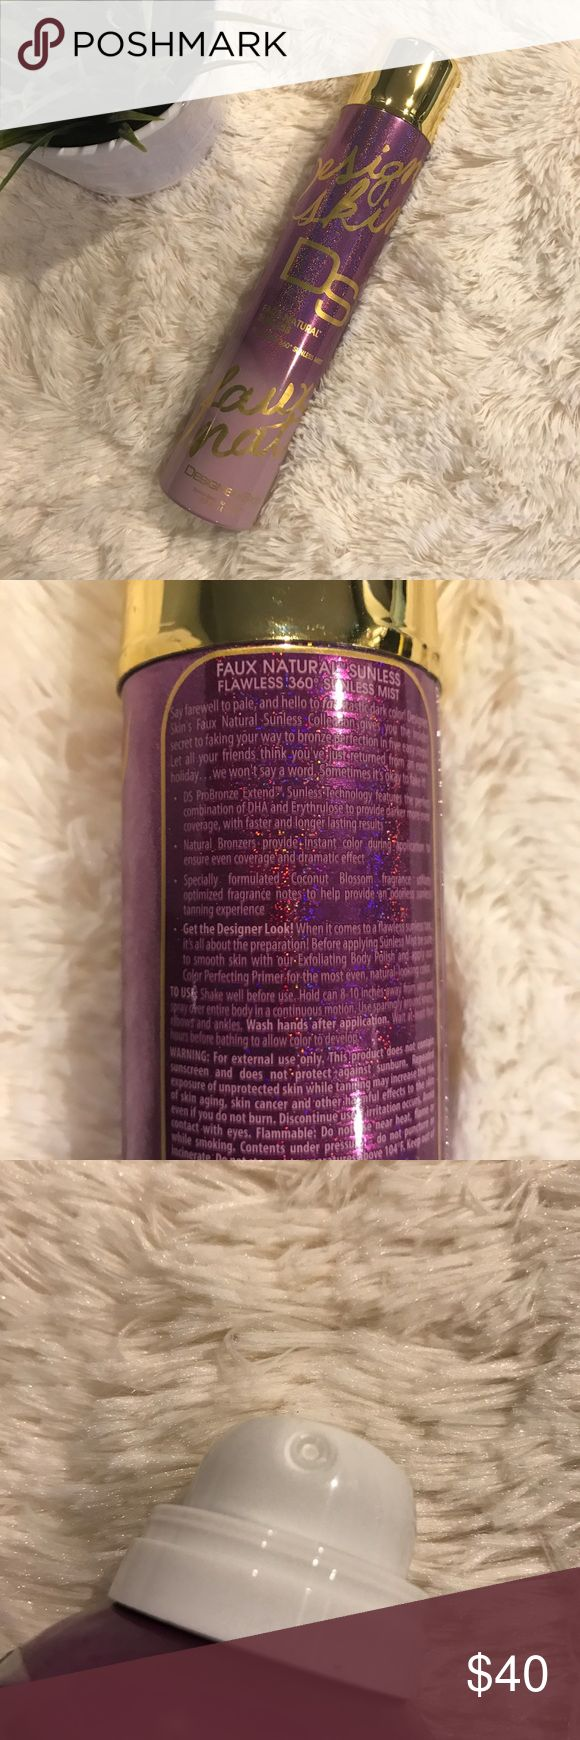 Designer Skin Faux Natural Sunless Spray Tan Item: Designer Skin Faux Natural Sunless Spray Tan Size: 8 fluid ounces  ❤️ Reasonable offers will be considered (please use the offer button to negotiate).  ✅ Bundle to save on shipping costs! ♏️ Lower prices on Merc! Find my page by searching for @heather_lynn.  ❌ NO TRADES! ❌ Lowball offers will be ignored and deleted. ❌ Users with unnecessary comments will be blocked.  Related: Victoria's Secret, PINK, Scented, Follow Me, Follow Game Designer…